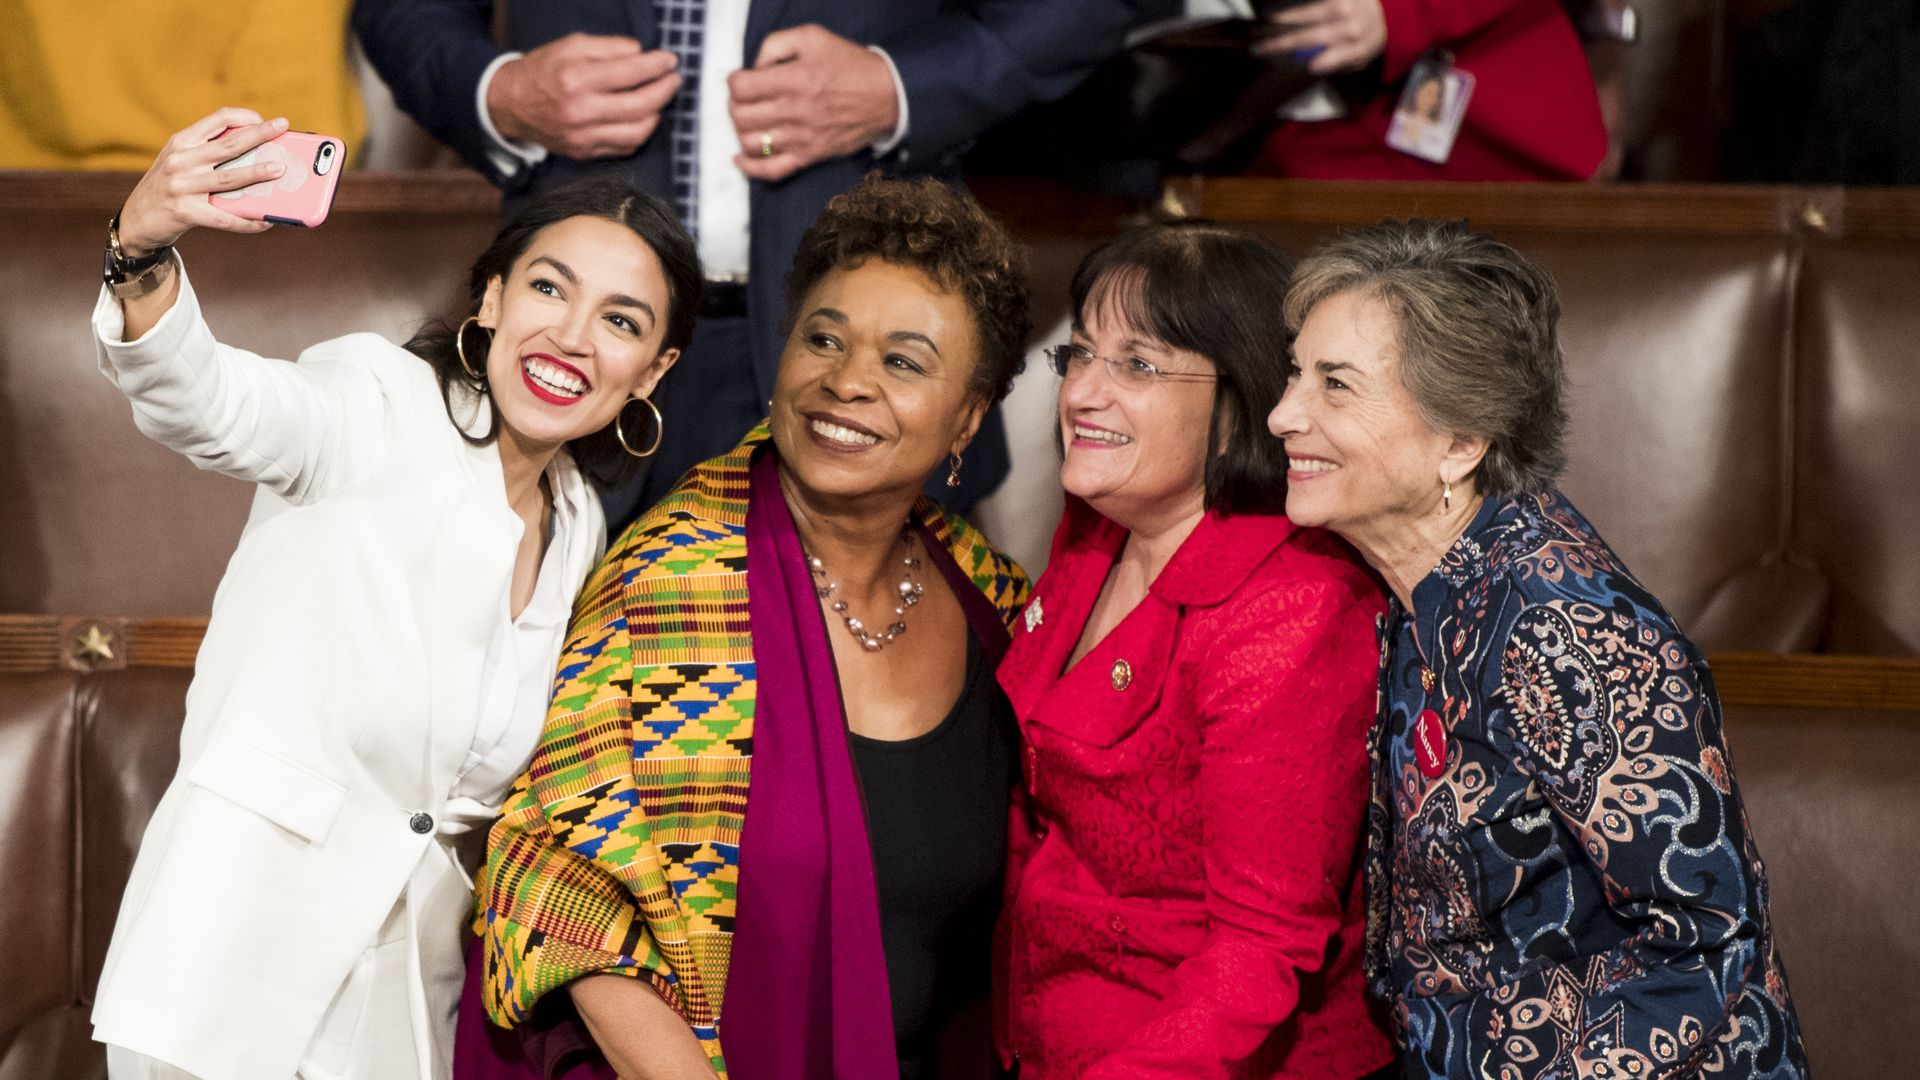 Freshman Reps. from left, Alexandria Ocasio-Cortez, D-N.Y., Barbara Lee, D-Texas, Annie Kuster, D-N.H., and Jan Schakowsky, D-Ill., take a selfie on the House floor before the start of the election